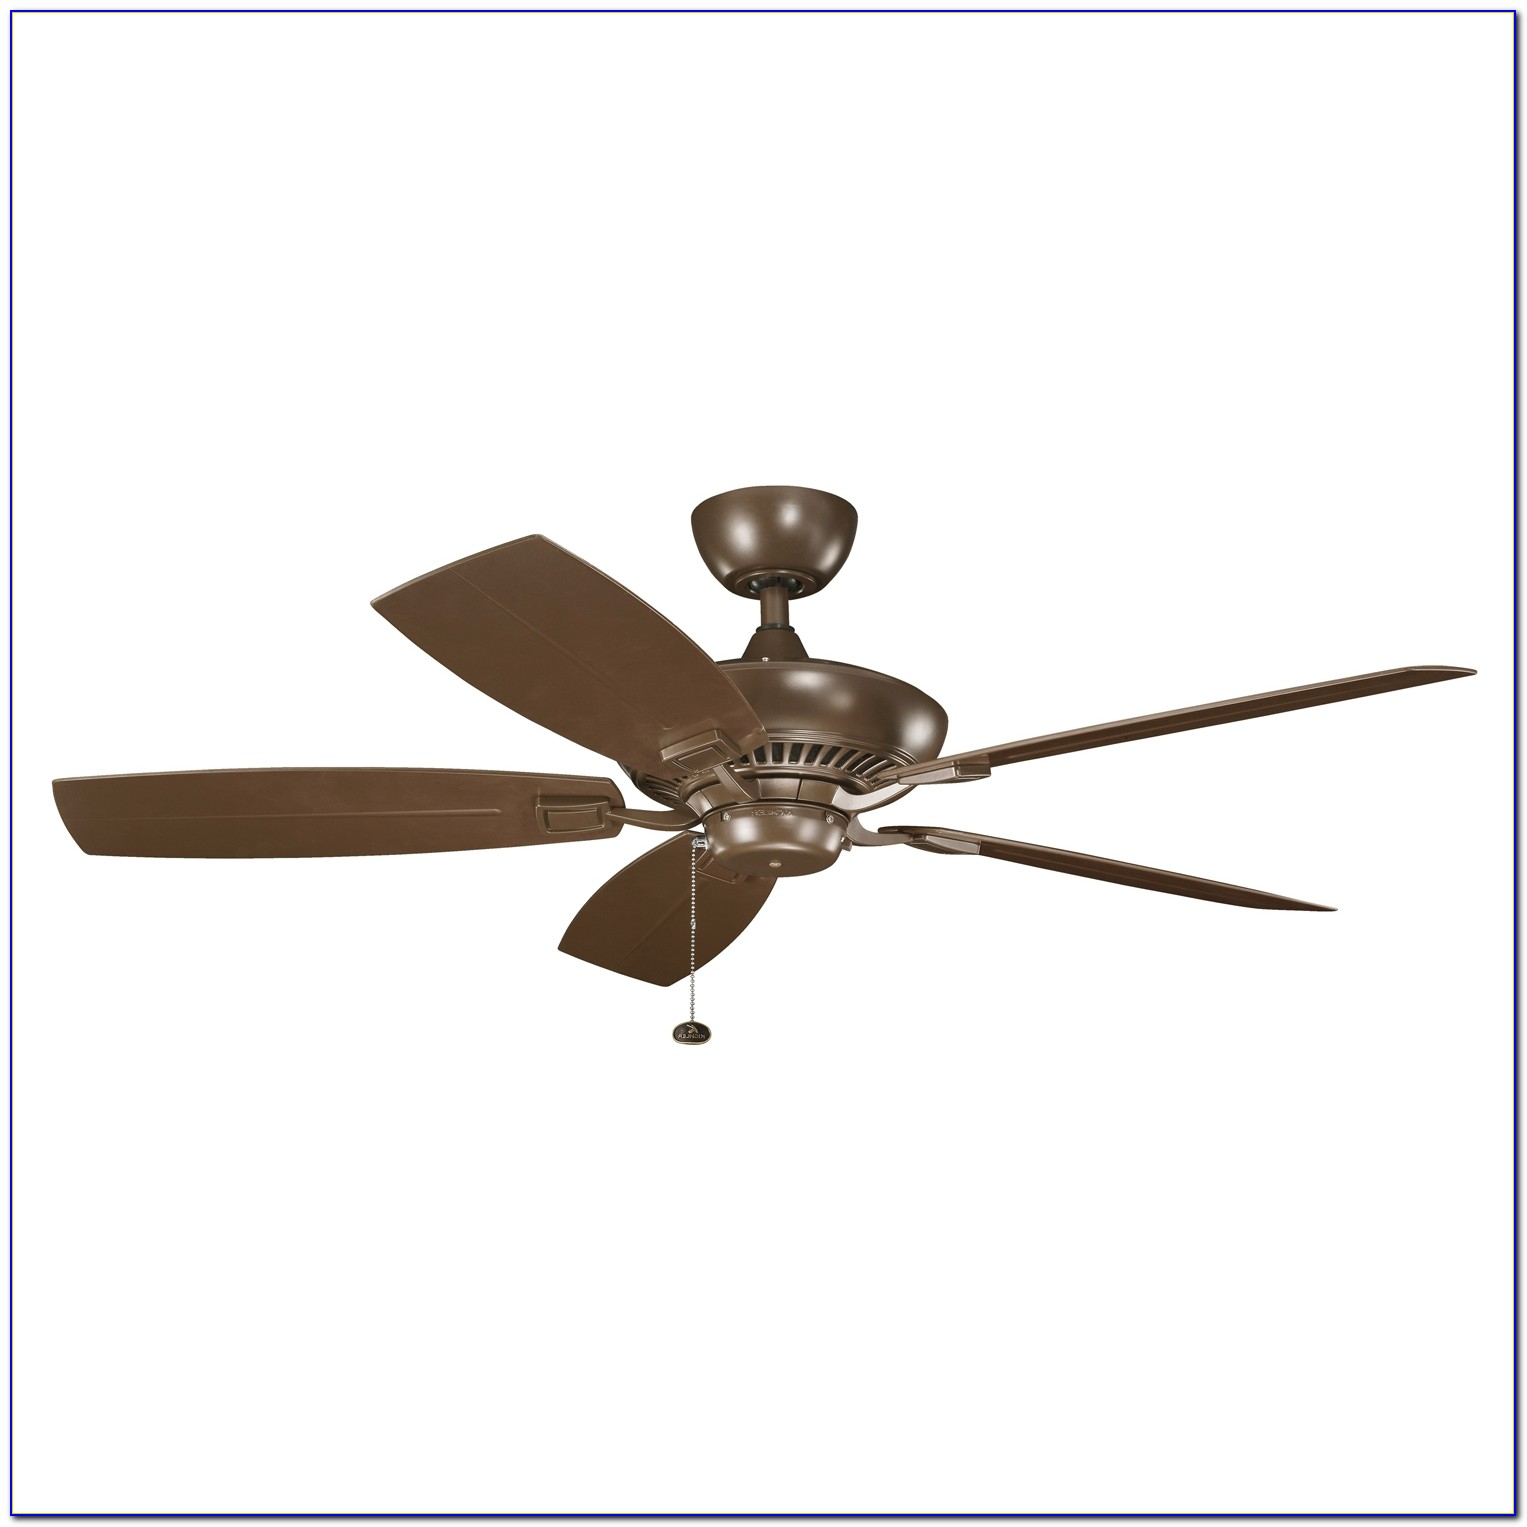 Wicker Ceiling Fan Blade Covers